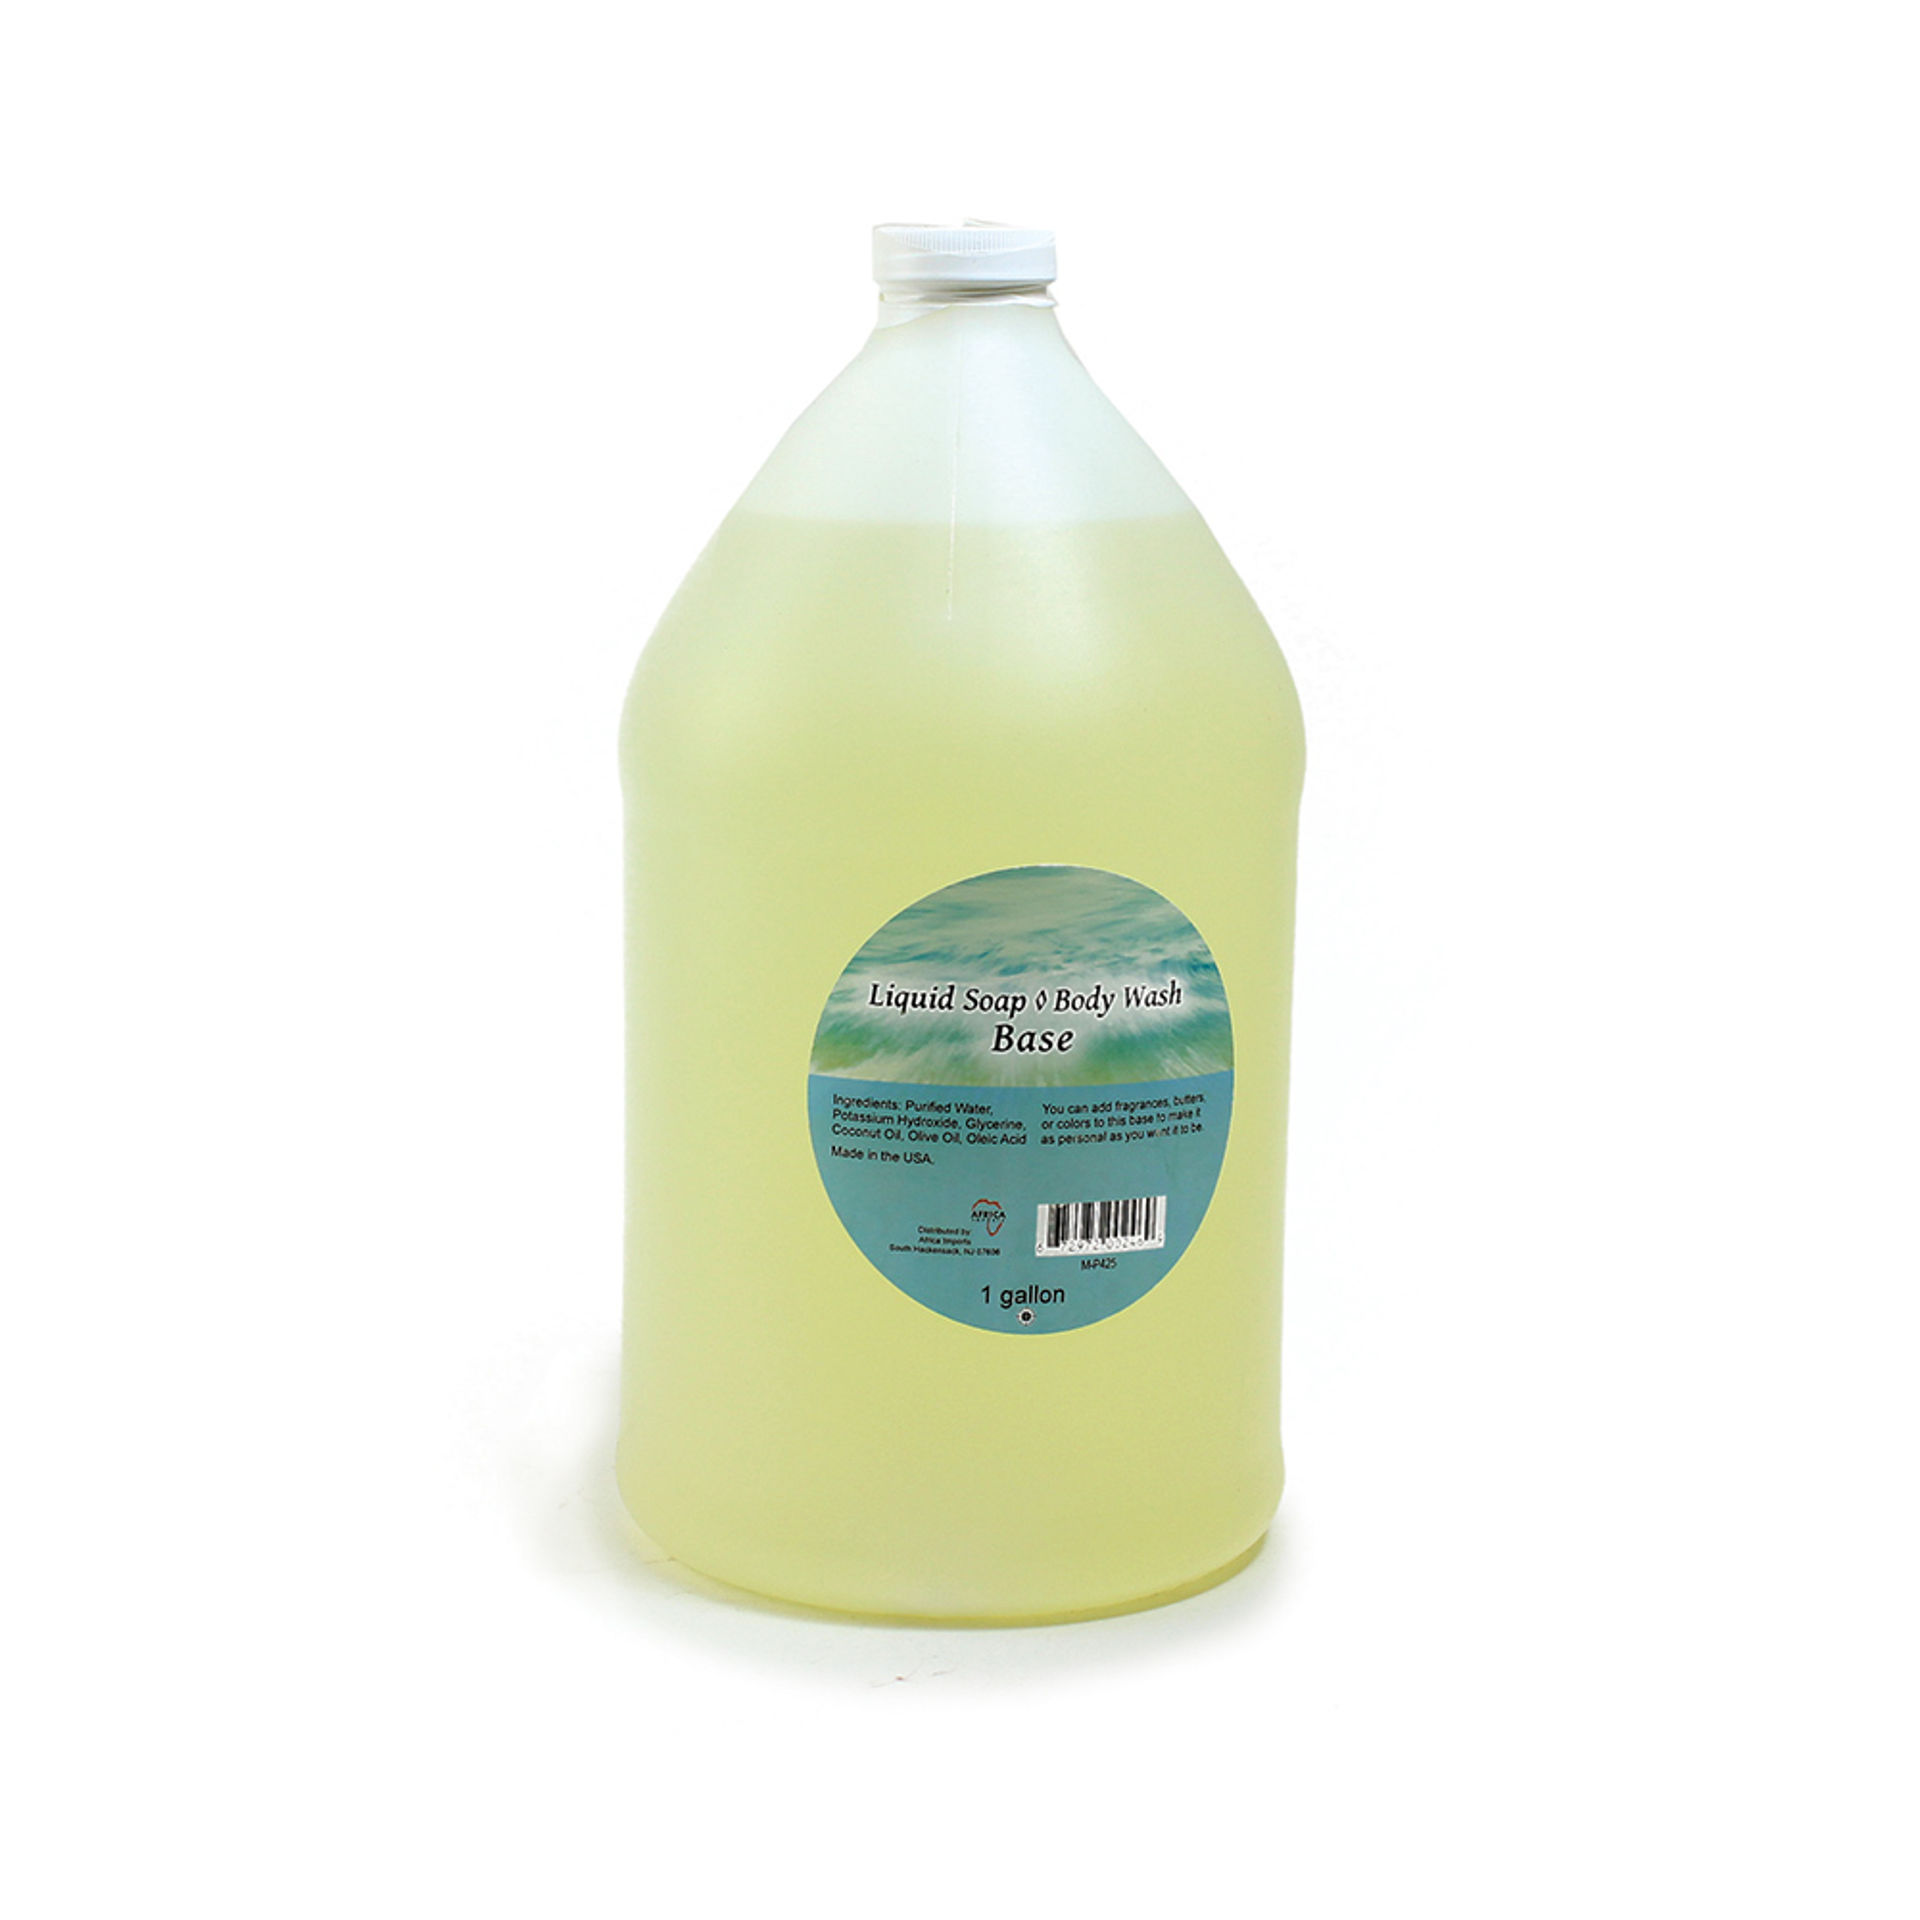 Picture of Liquid Soap & Body Wash Base - 1 Gallon